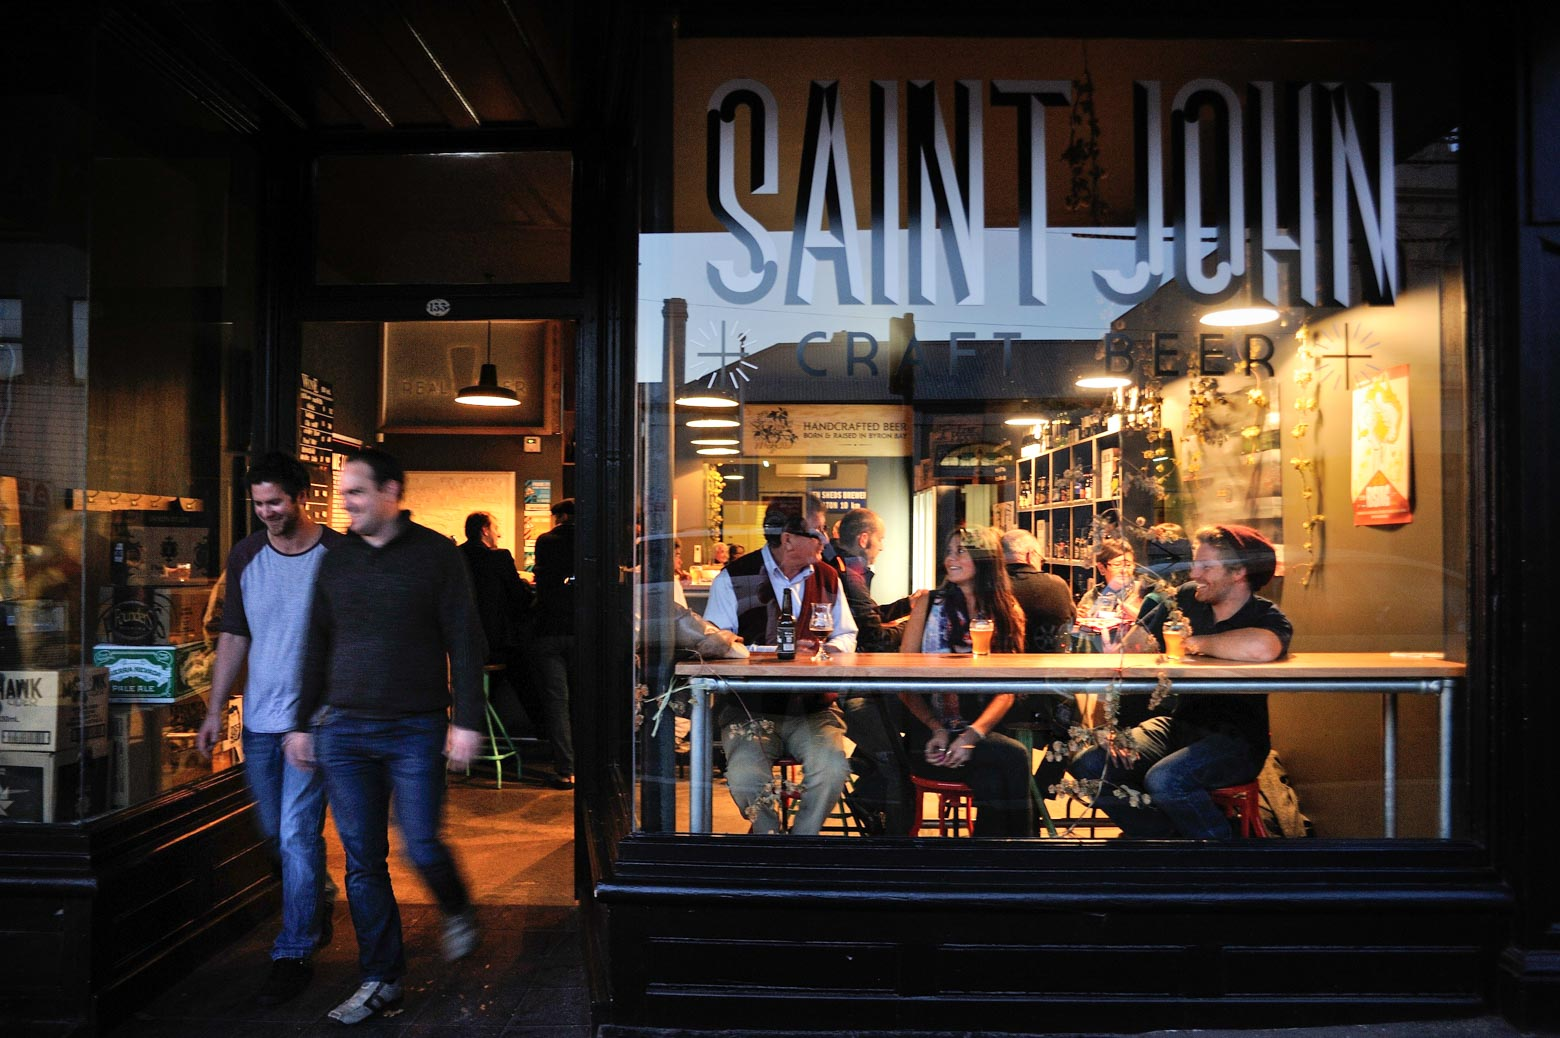 Stop for a drink at Saint John Craft Beer on your Lap of Tasmania road trip